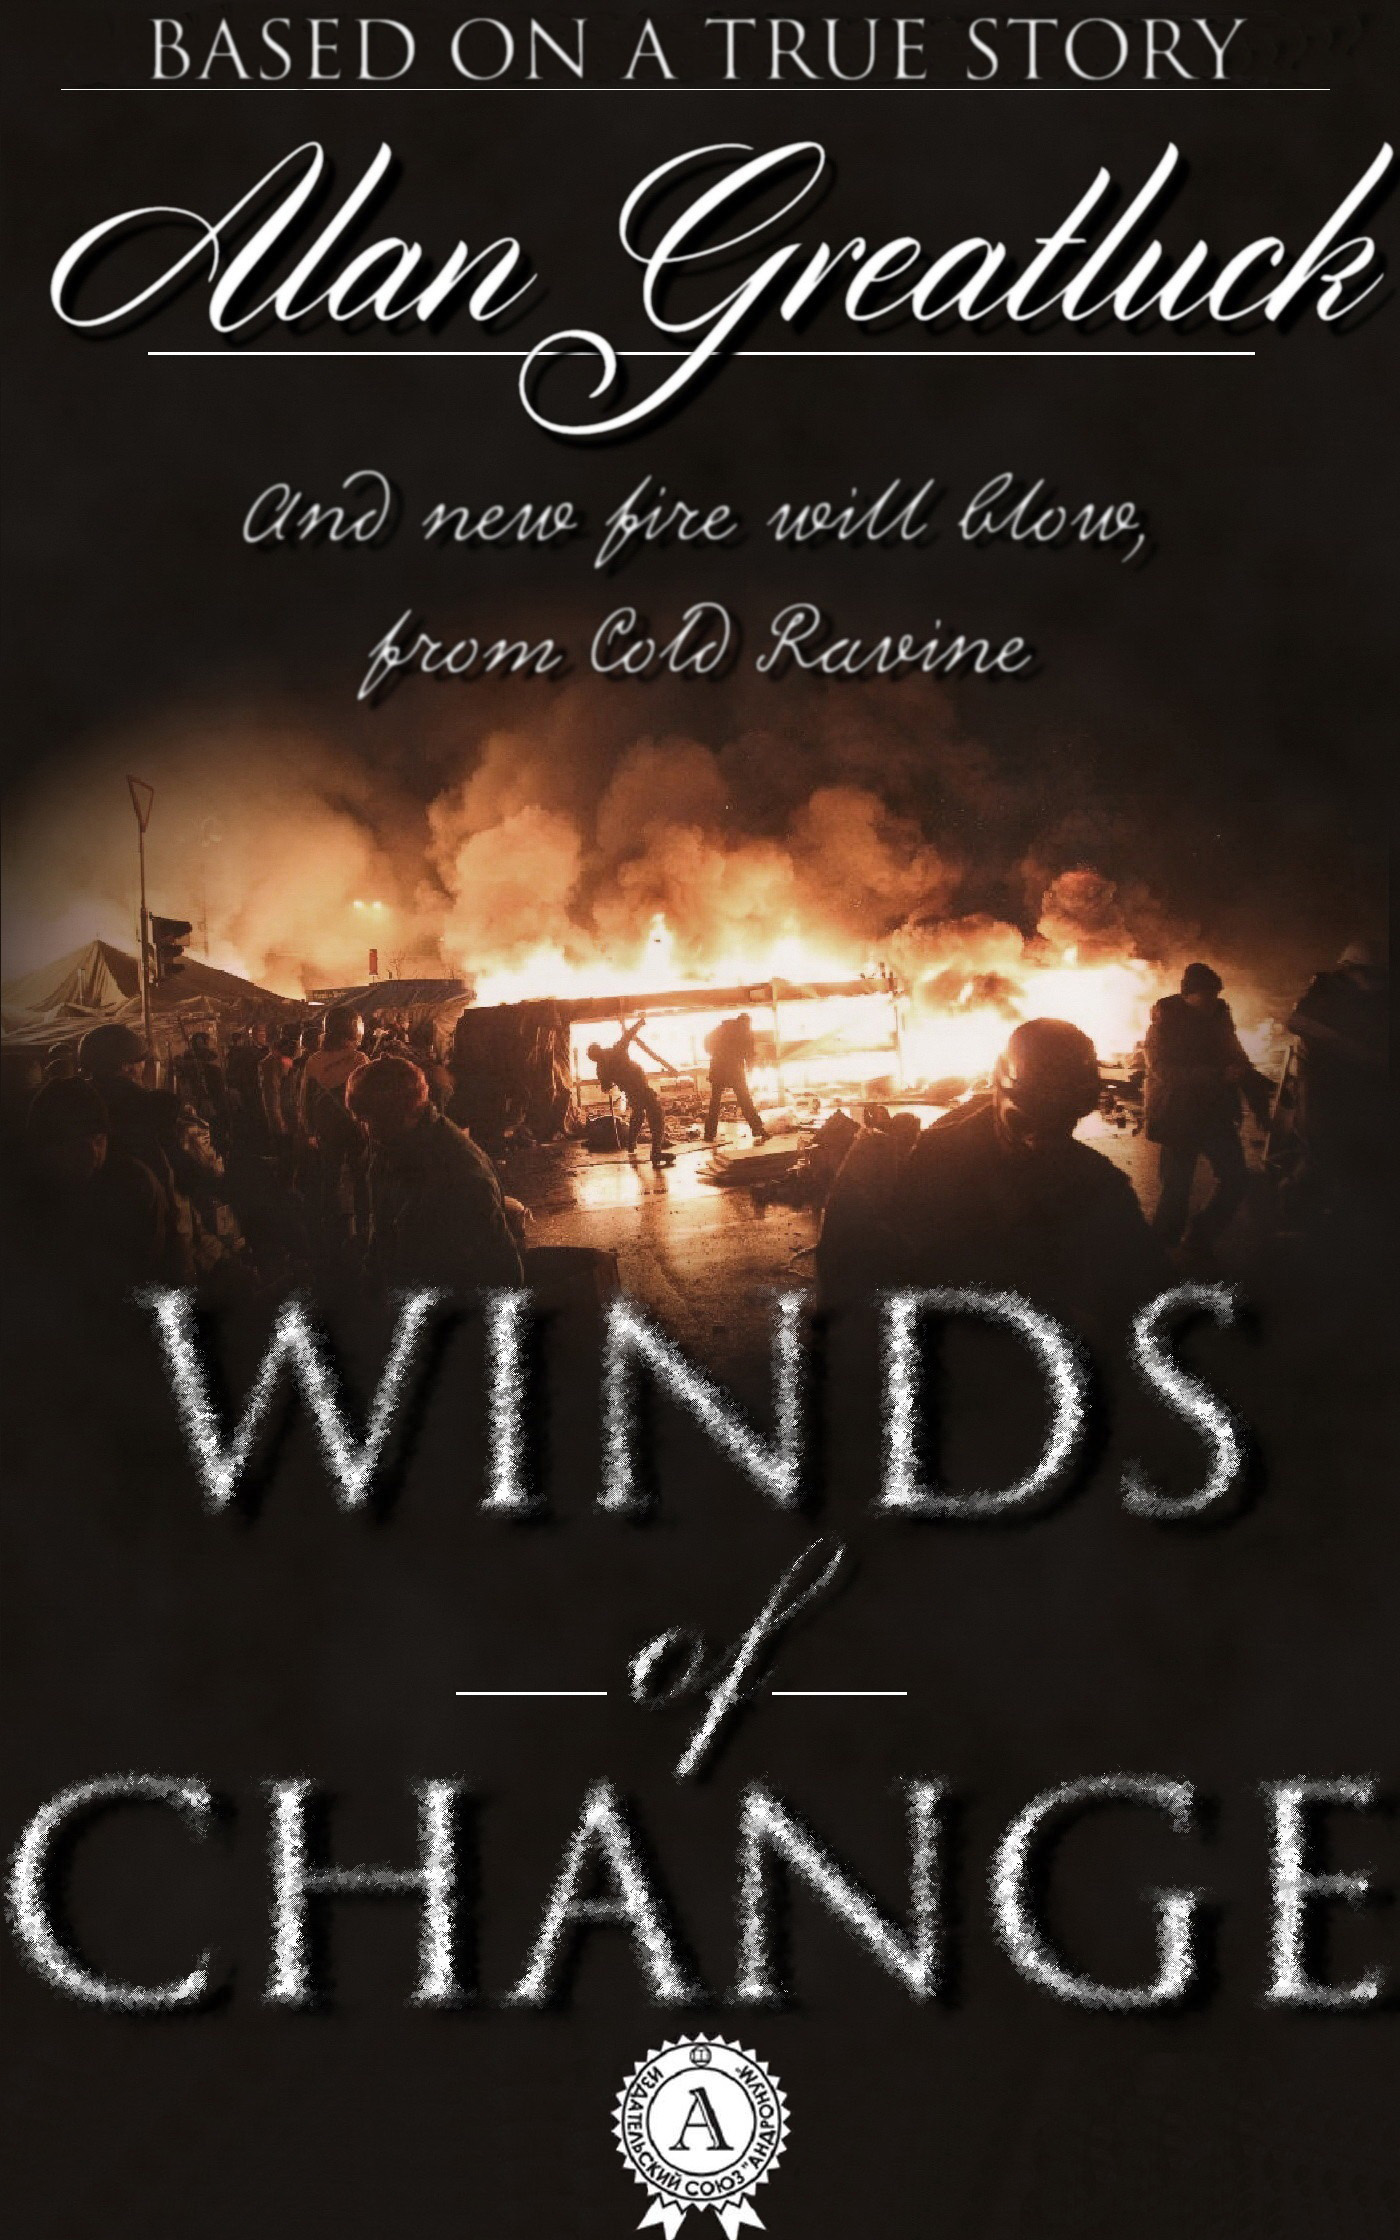 книга Winds of Change автора Alan Greatluck